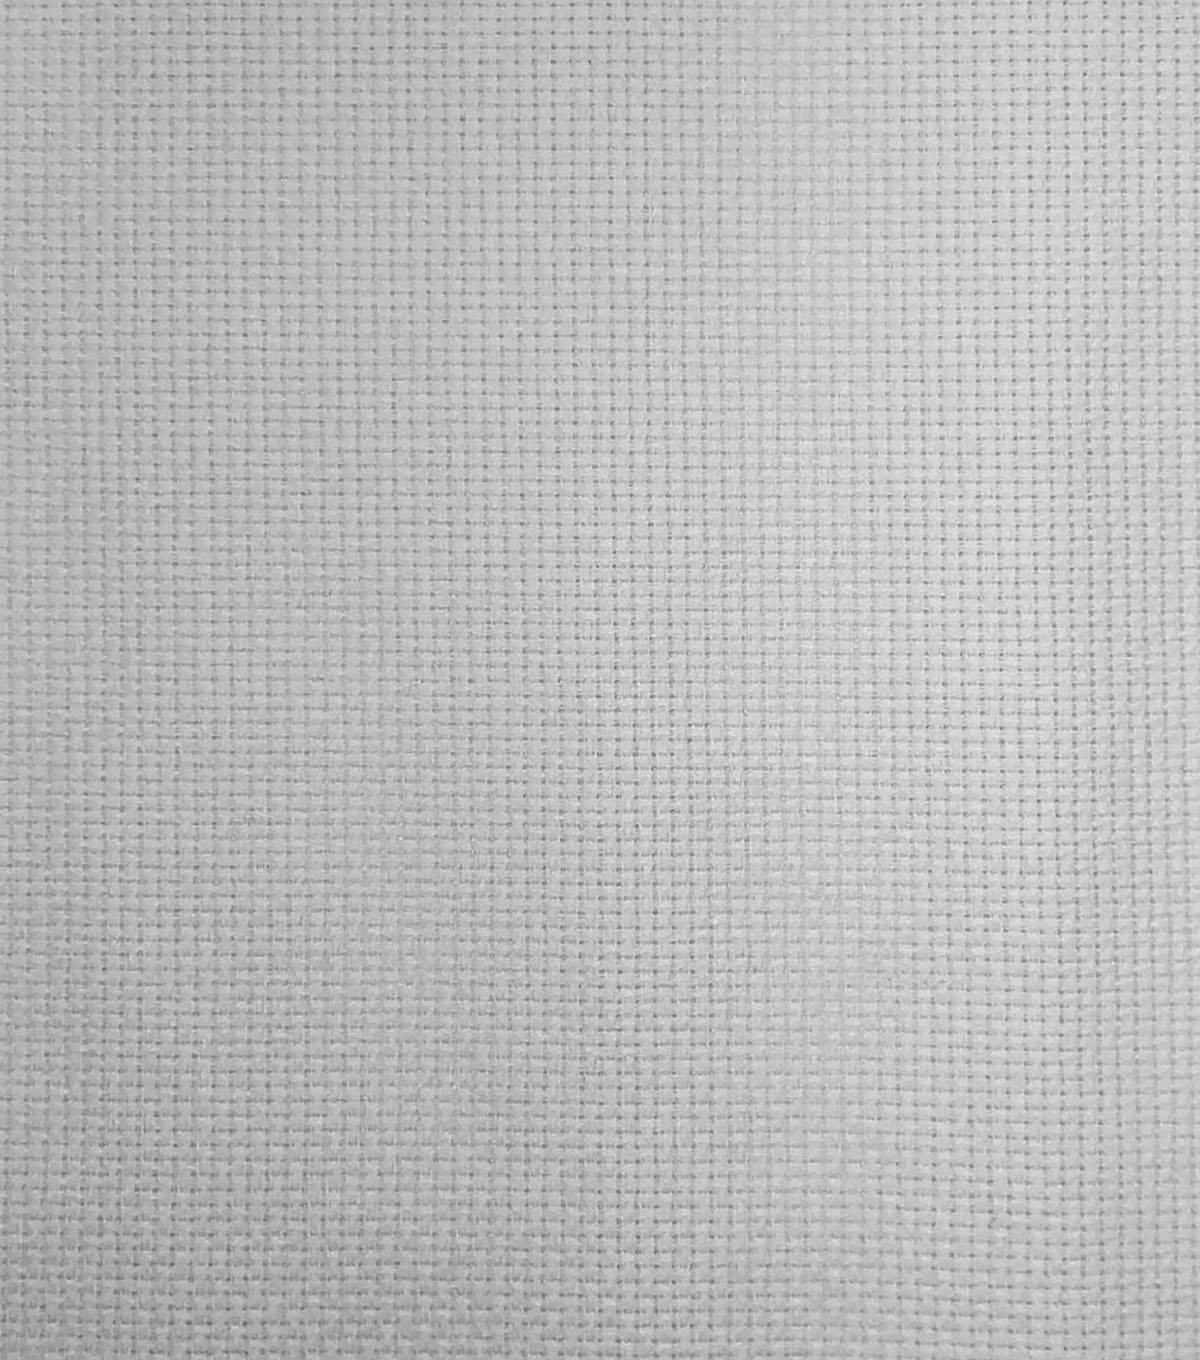 16 Count 15\u0022x18\u0022 Aida Cloth-White